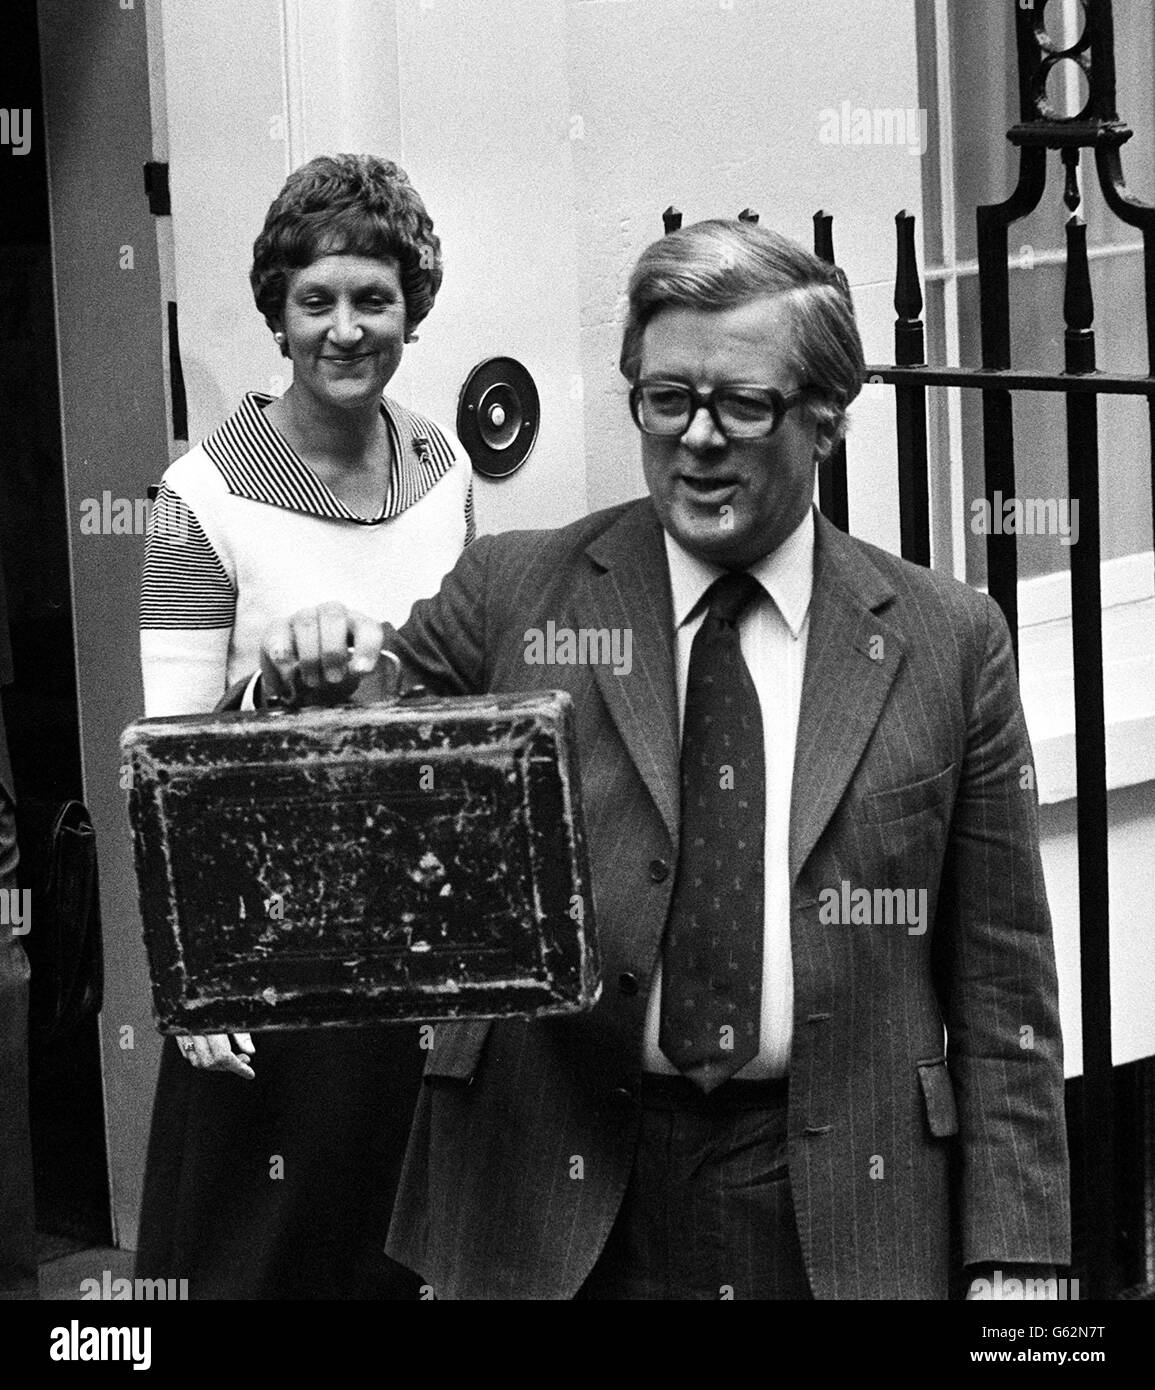 Sir Geoffrey Howe with budget box - Stock Image